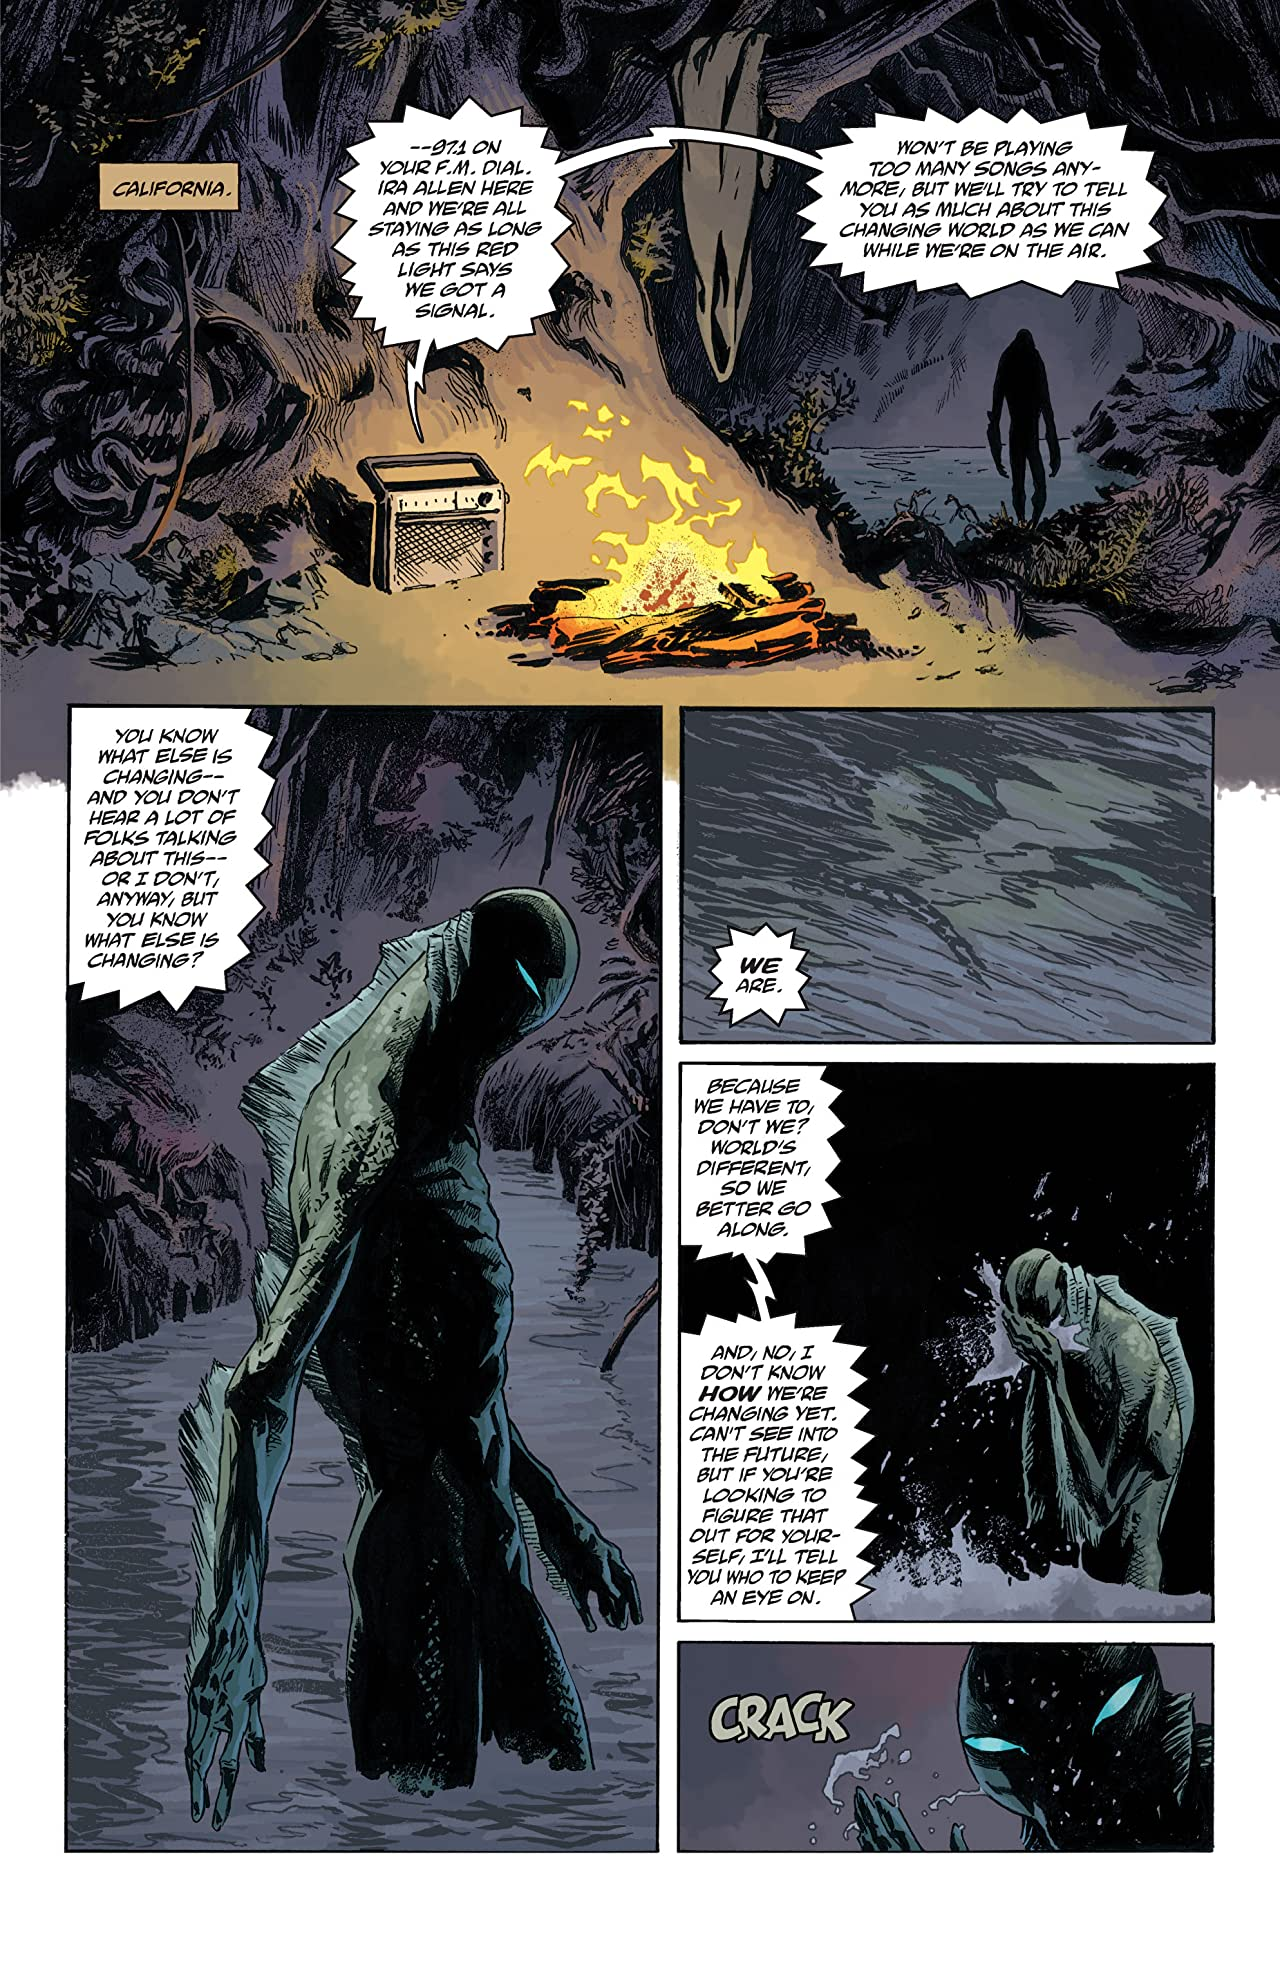 Abe Sapien #4: The New Race of Men (Part 1 of 2)